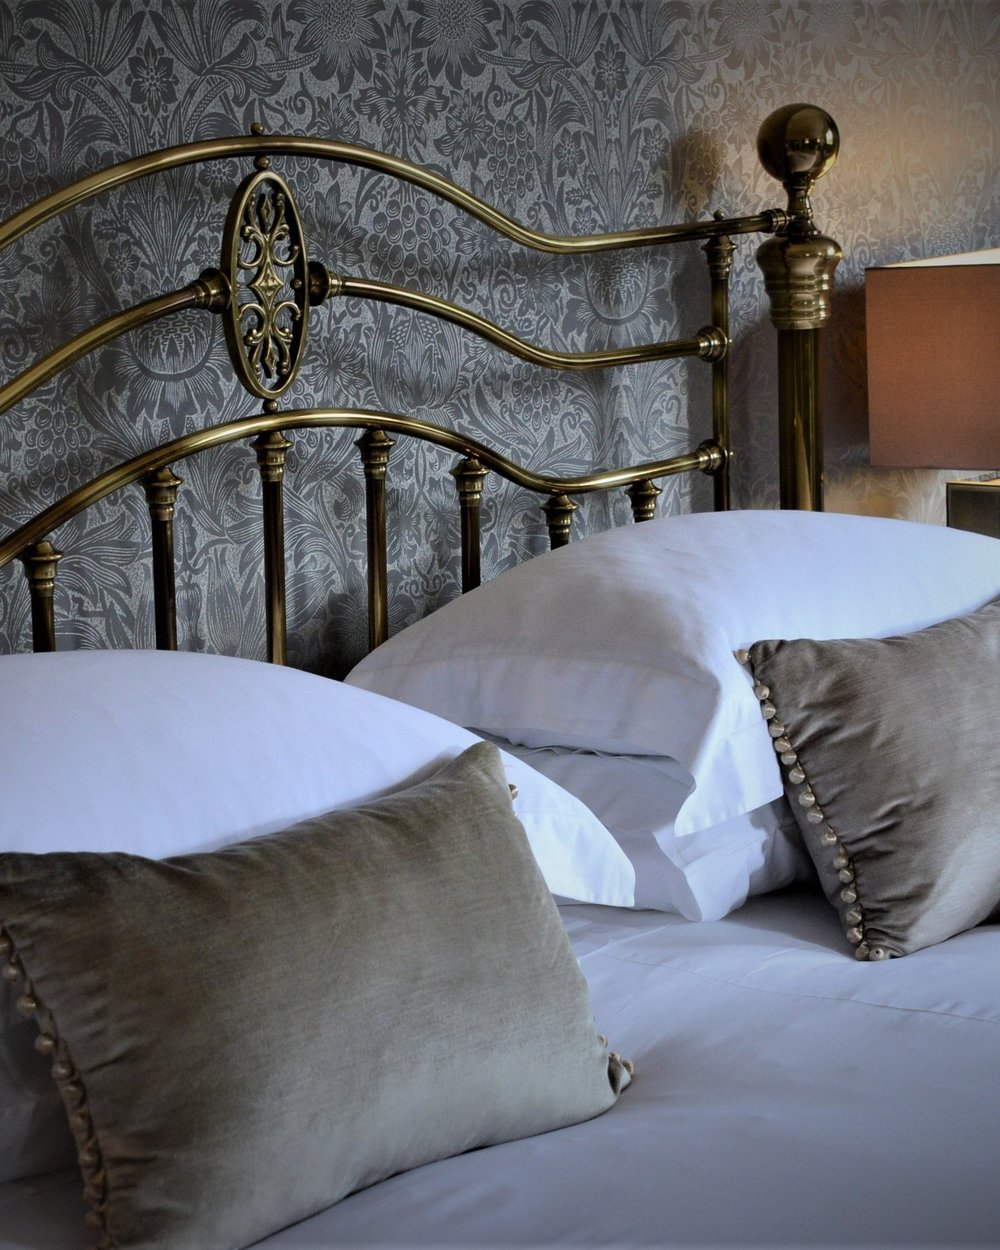 Stay - Each of our stylish six en-suite rooms has been designed to provide luxury and comfort while complementing the unique surroundings of the house and its picturesque setting.